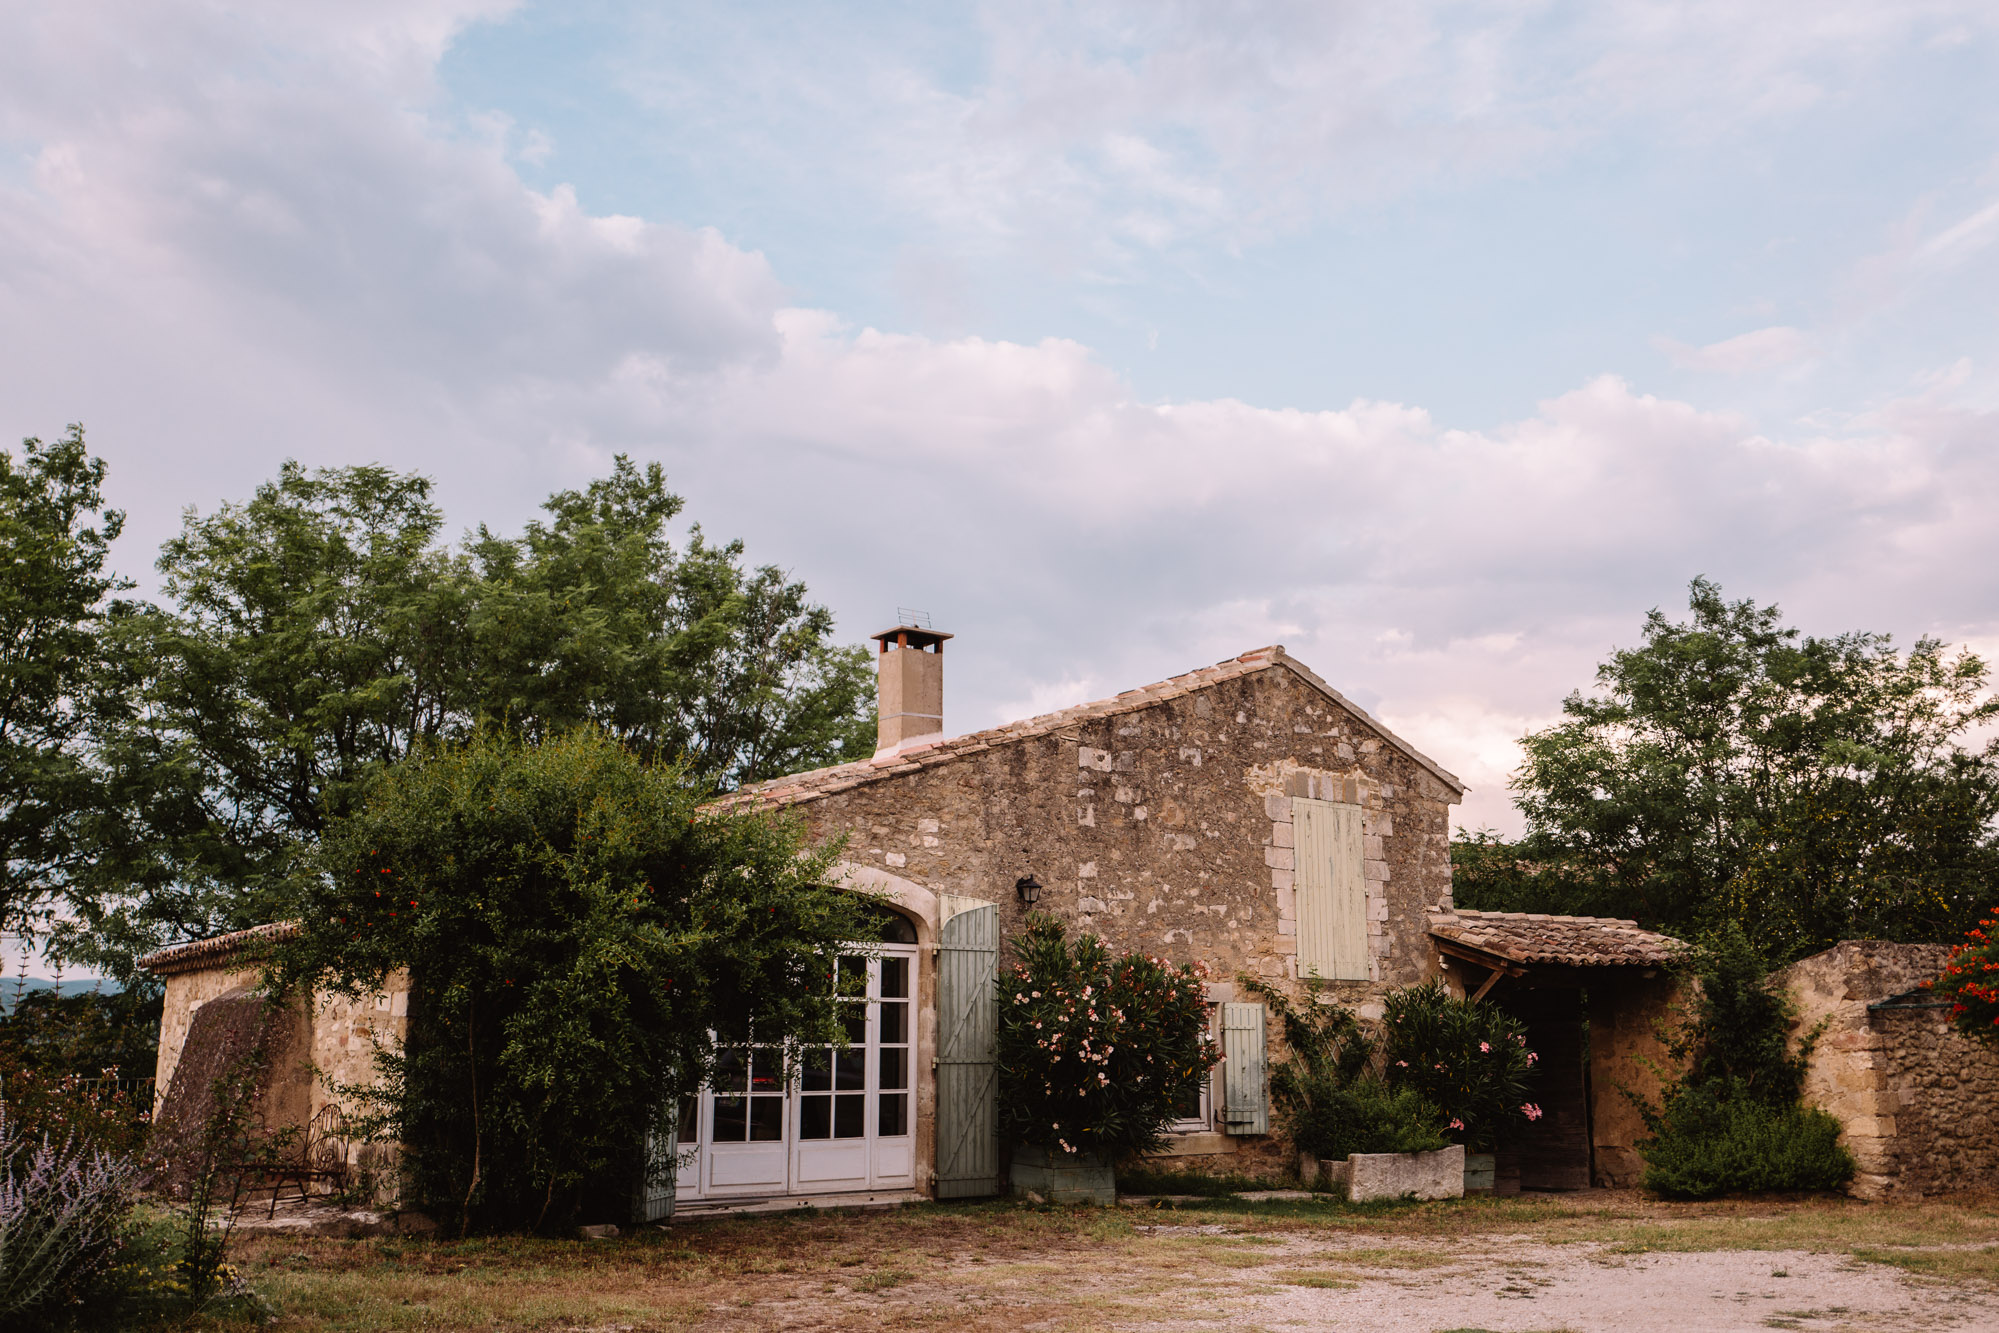 Oppede airbnb near lavender fields in provence, South of France